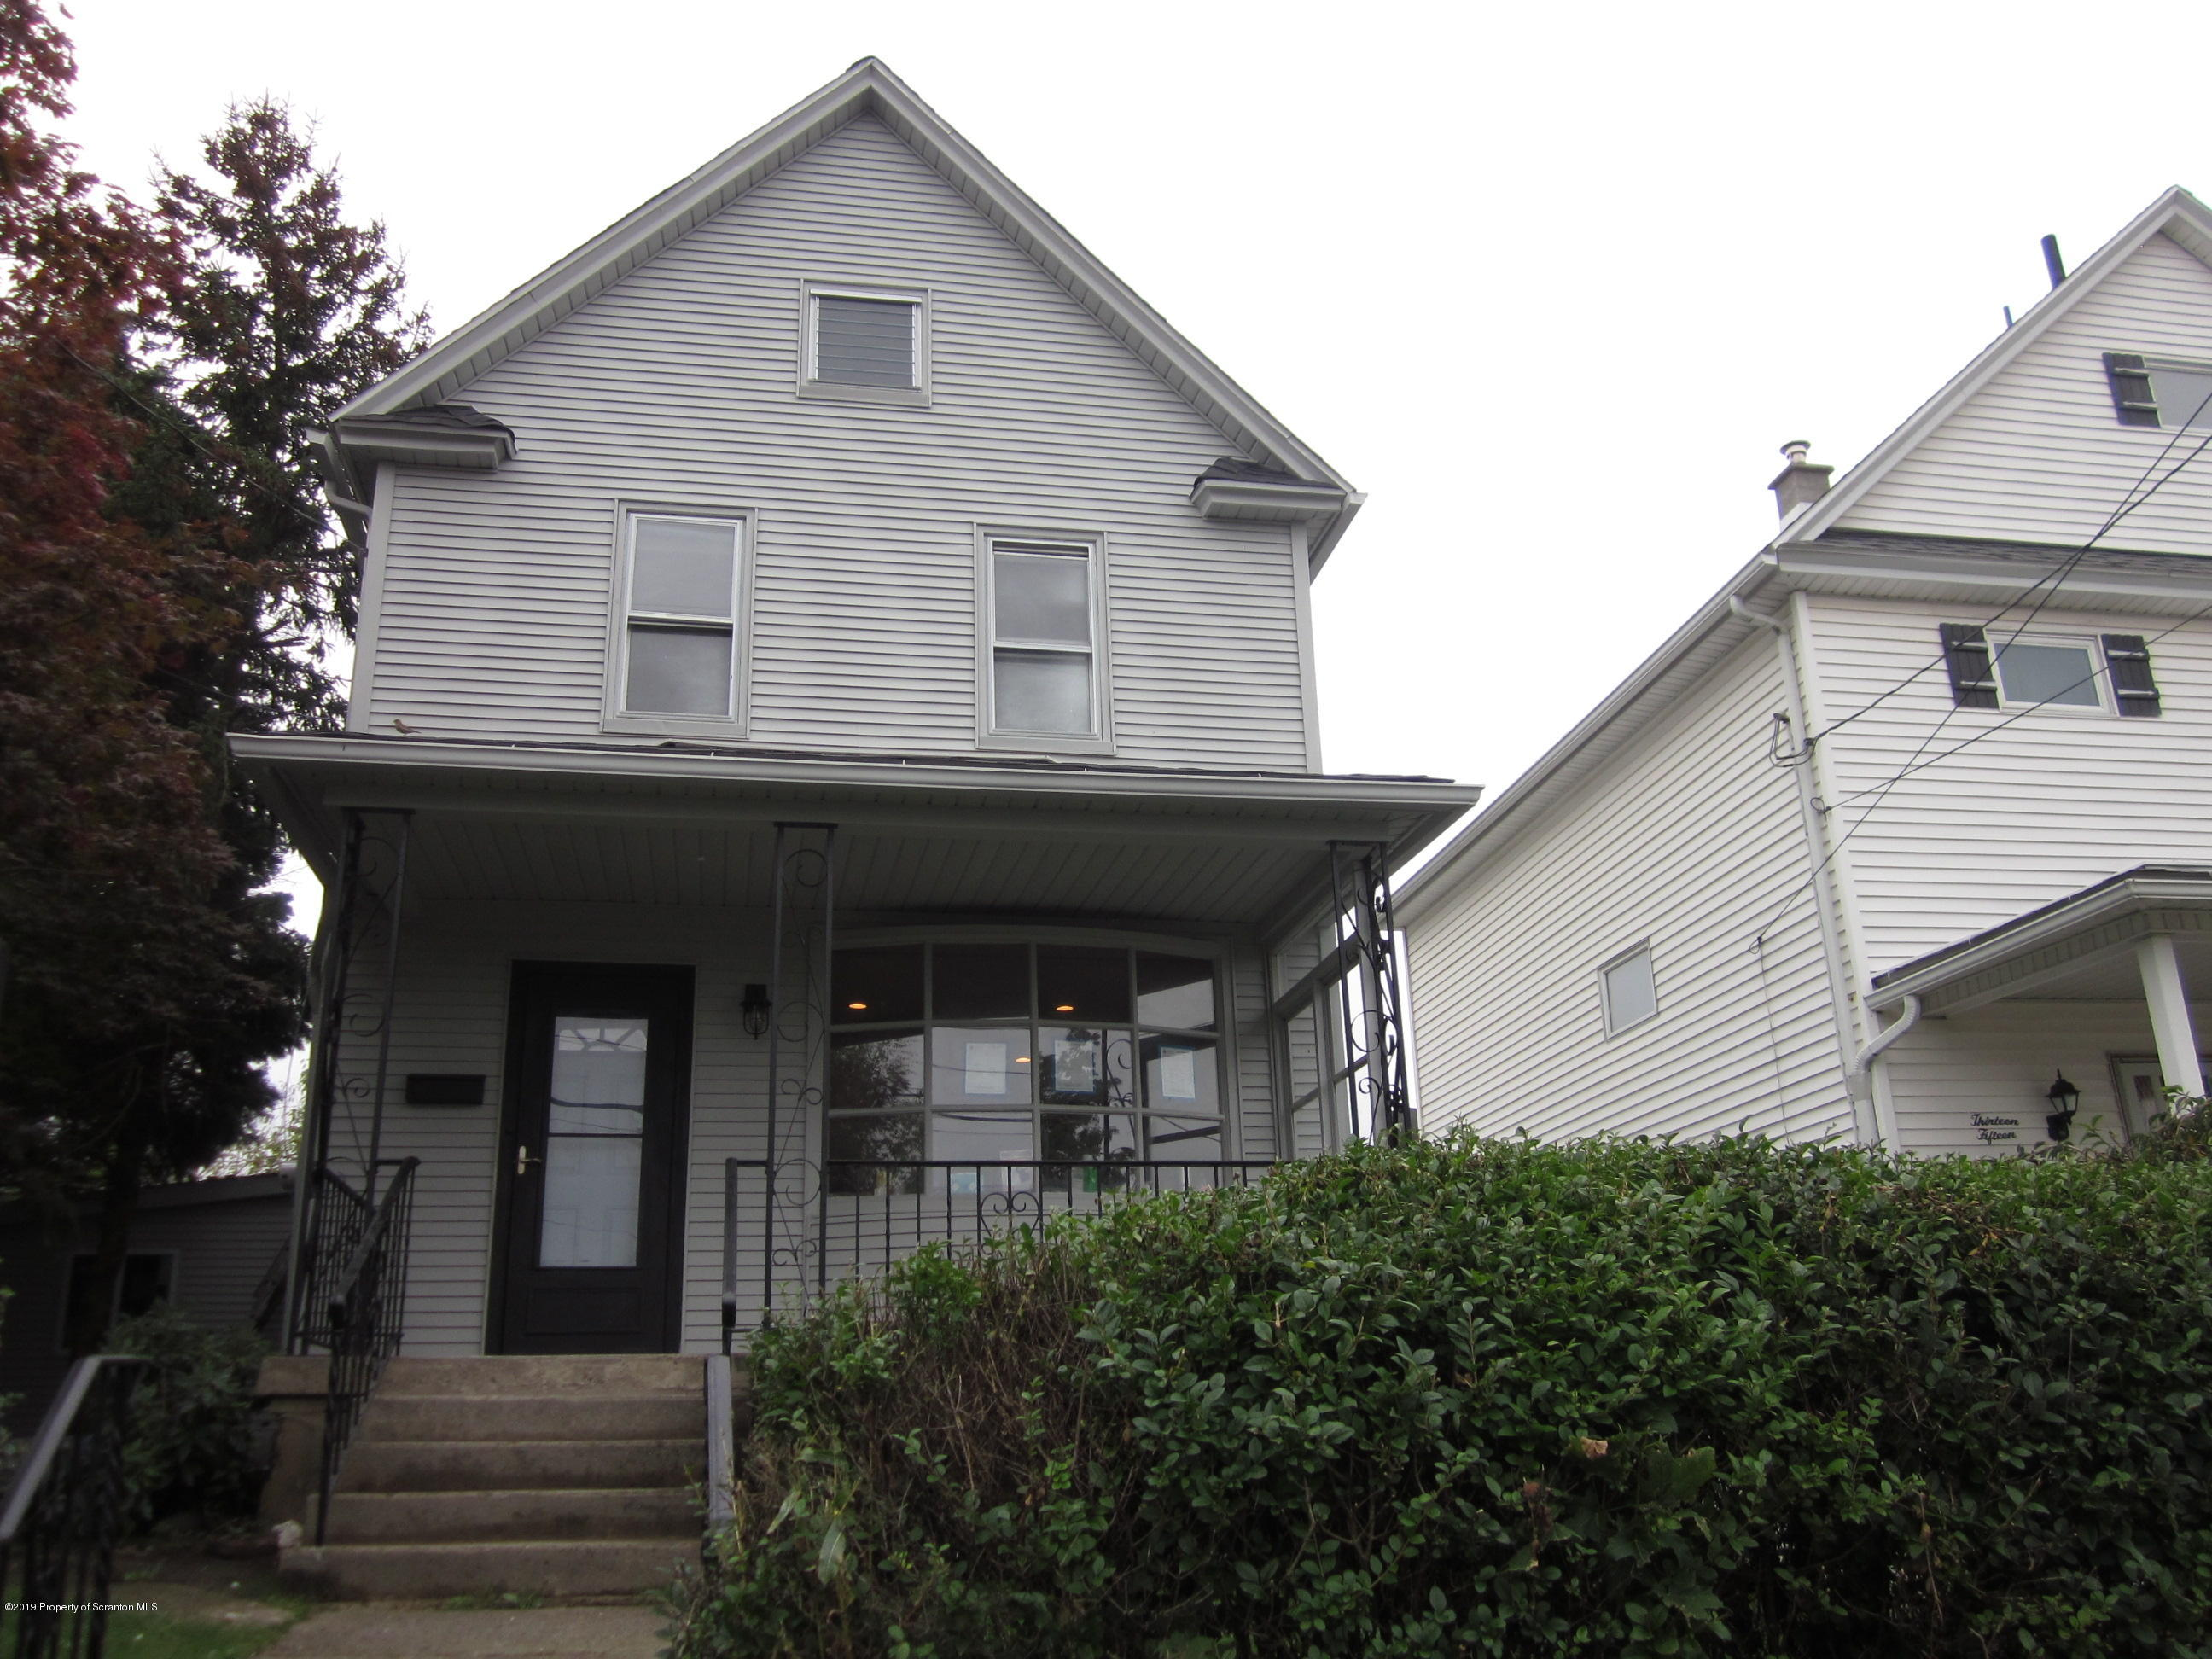 1311 Dartmouth St, Scranton, Pennsylvania 18504, 3 Bedrooms Bedrooms, 6 Rooms Rooms,2 BathroomsBathrooms,Single Family,For Sale,Dartmouth,19-4746